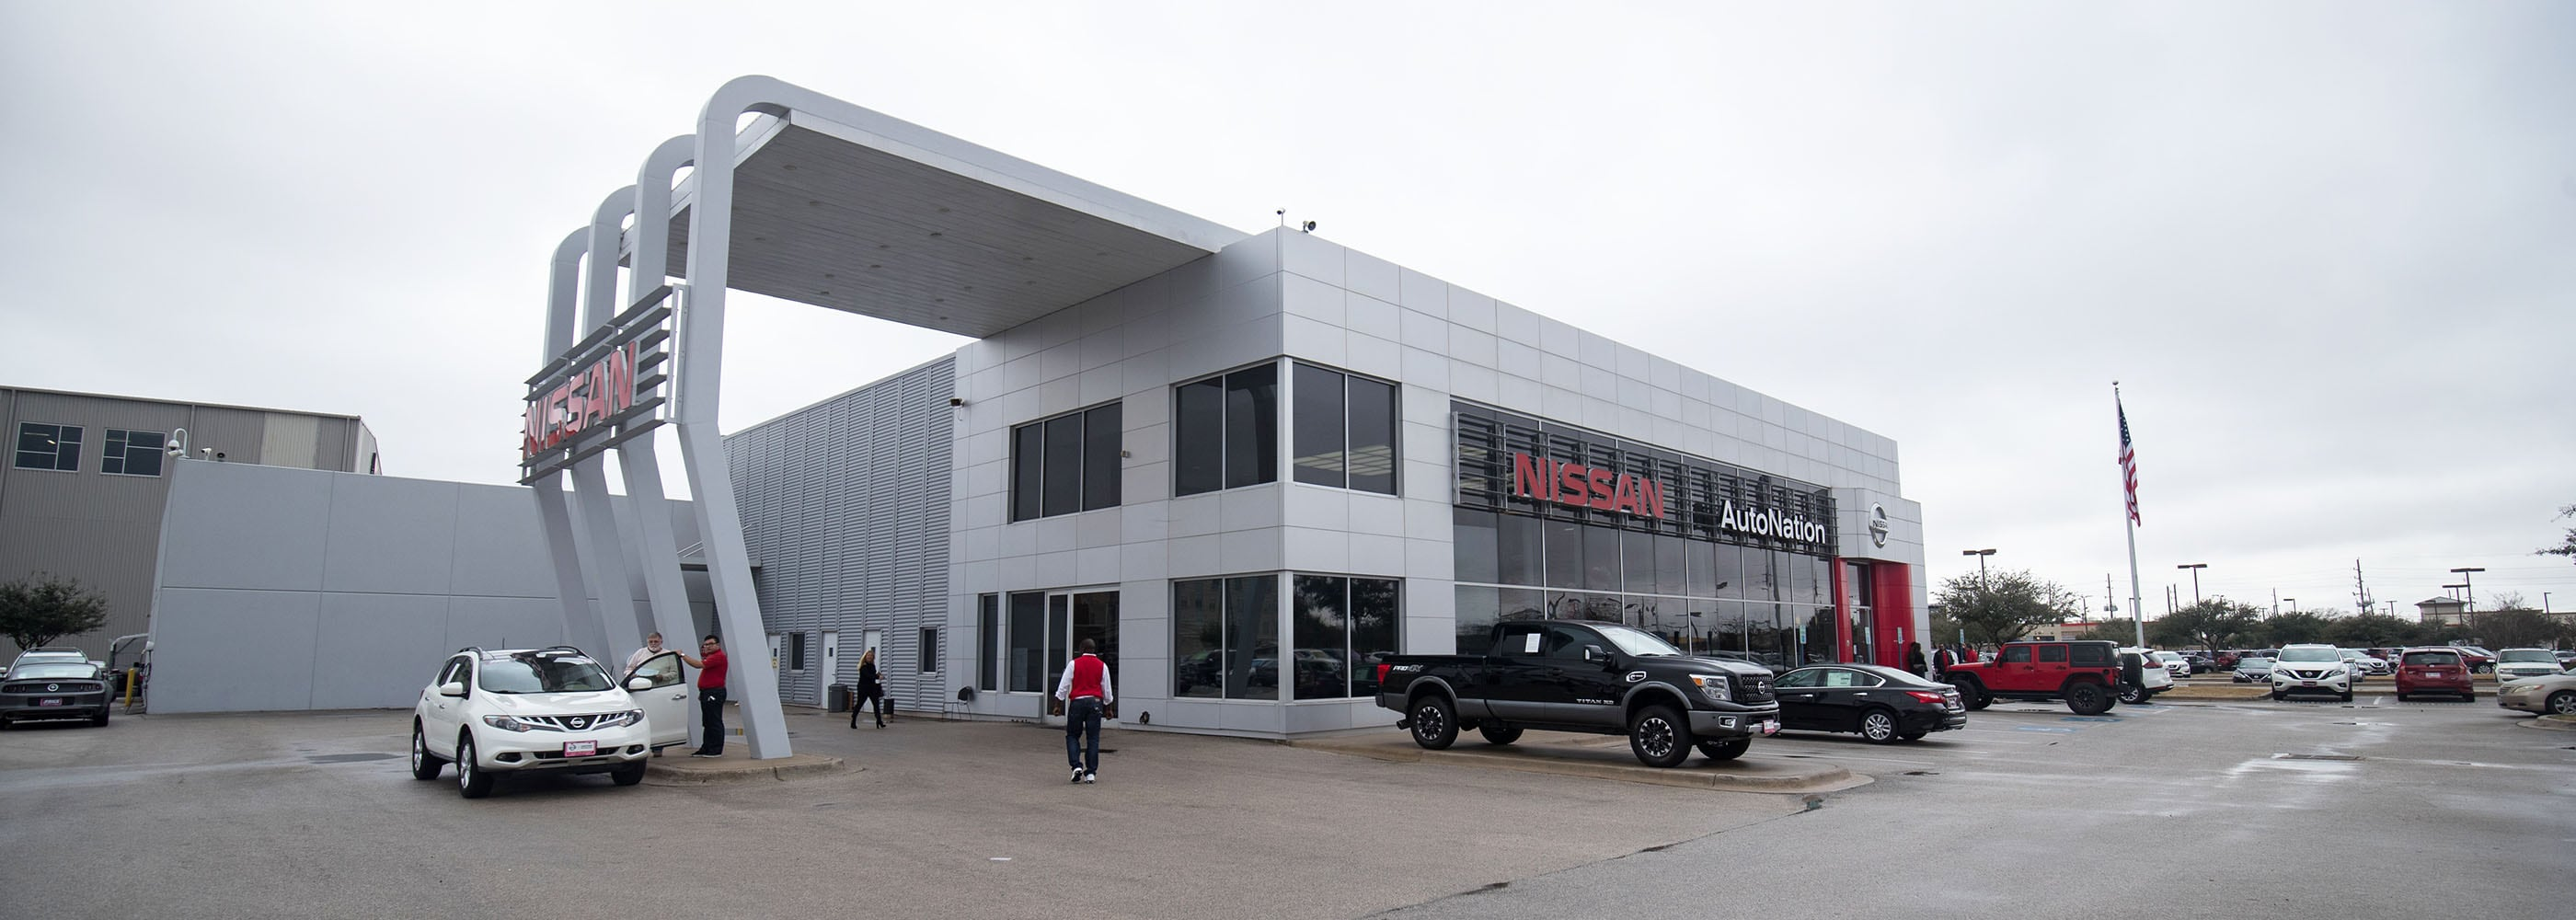 AutoNation Nissan Katy